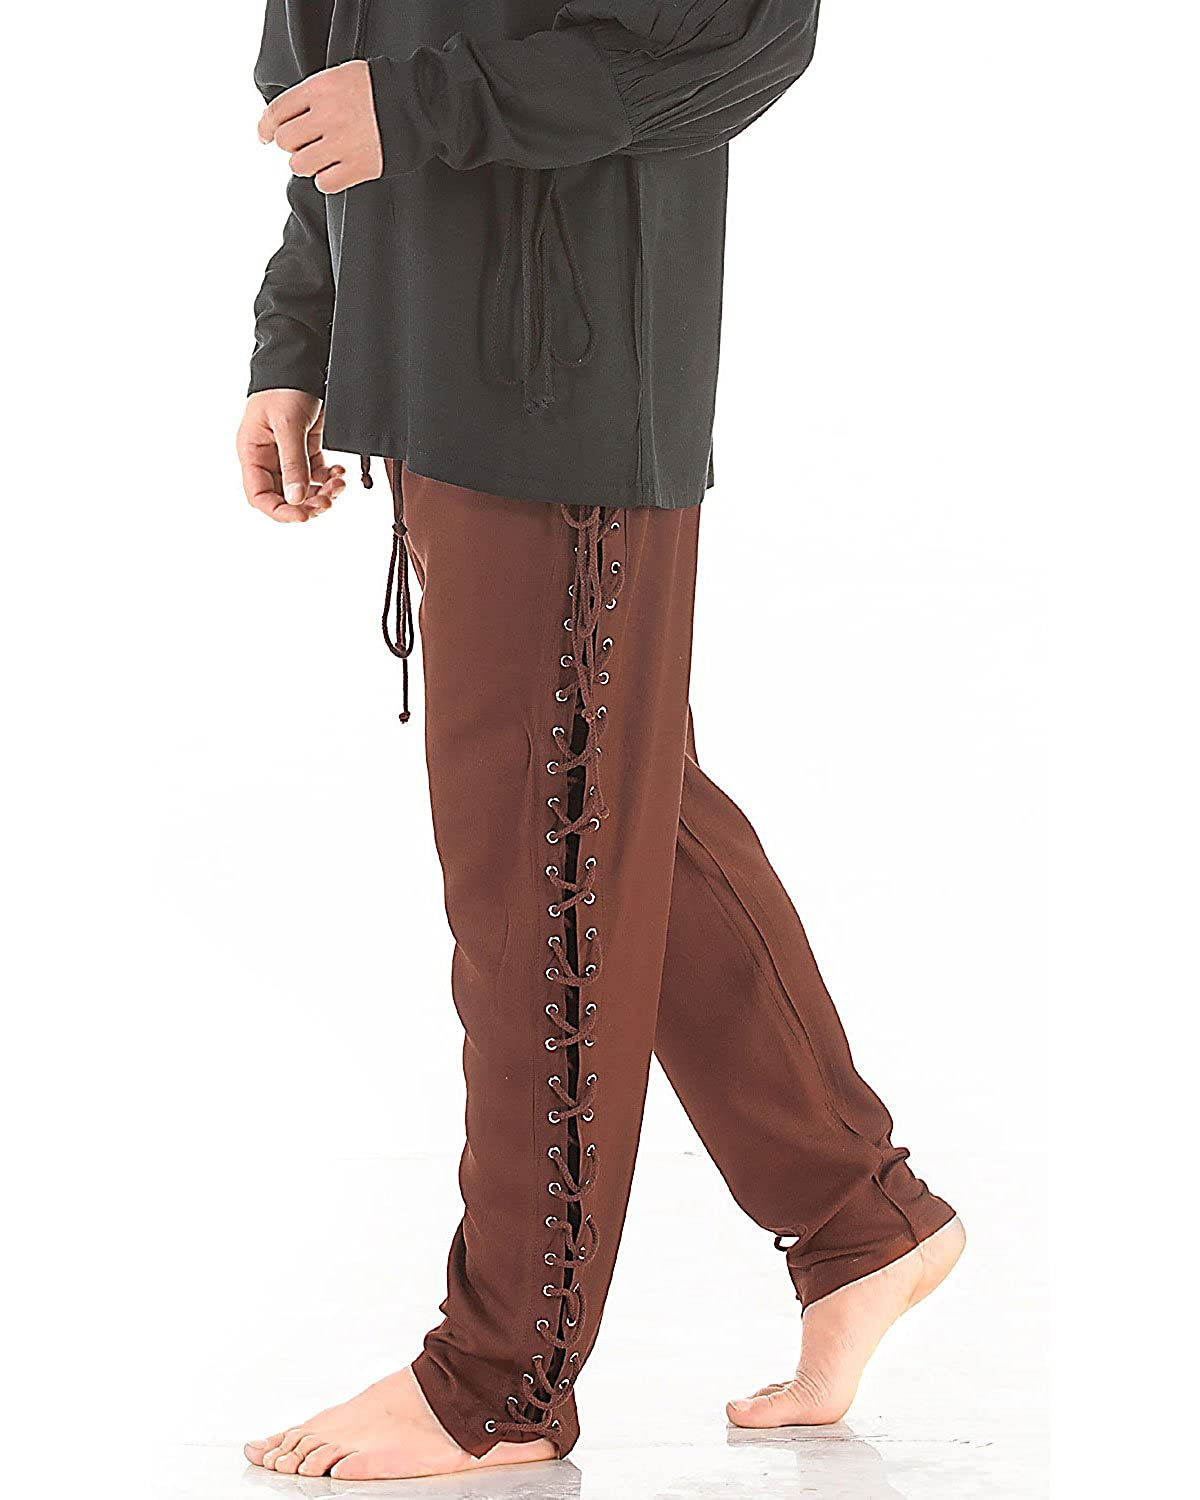 Renaissance Lace-Up Pants Costume